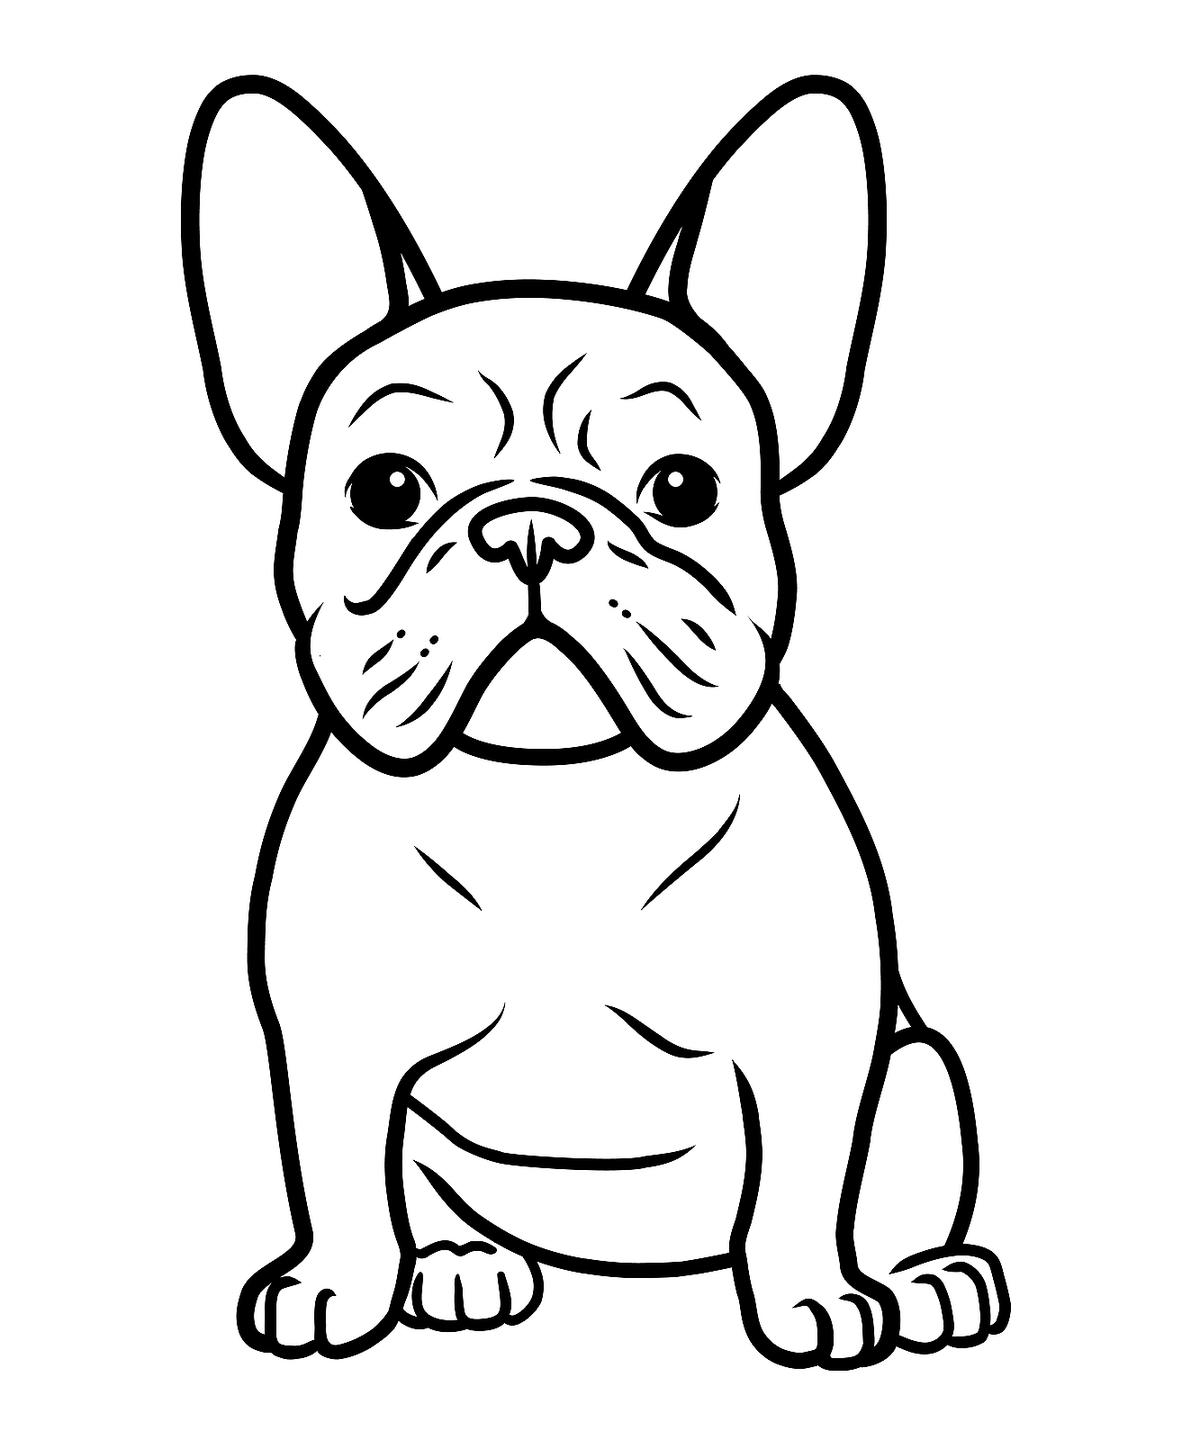 coloring page of a dog husky coloring pages best coloring pages for kids coloring of a dog page